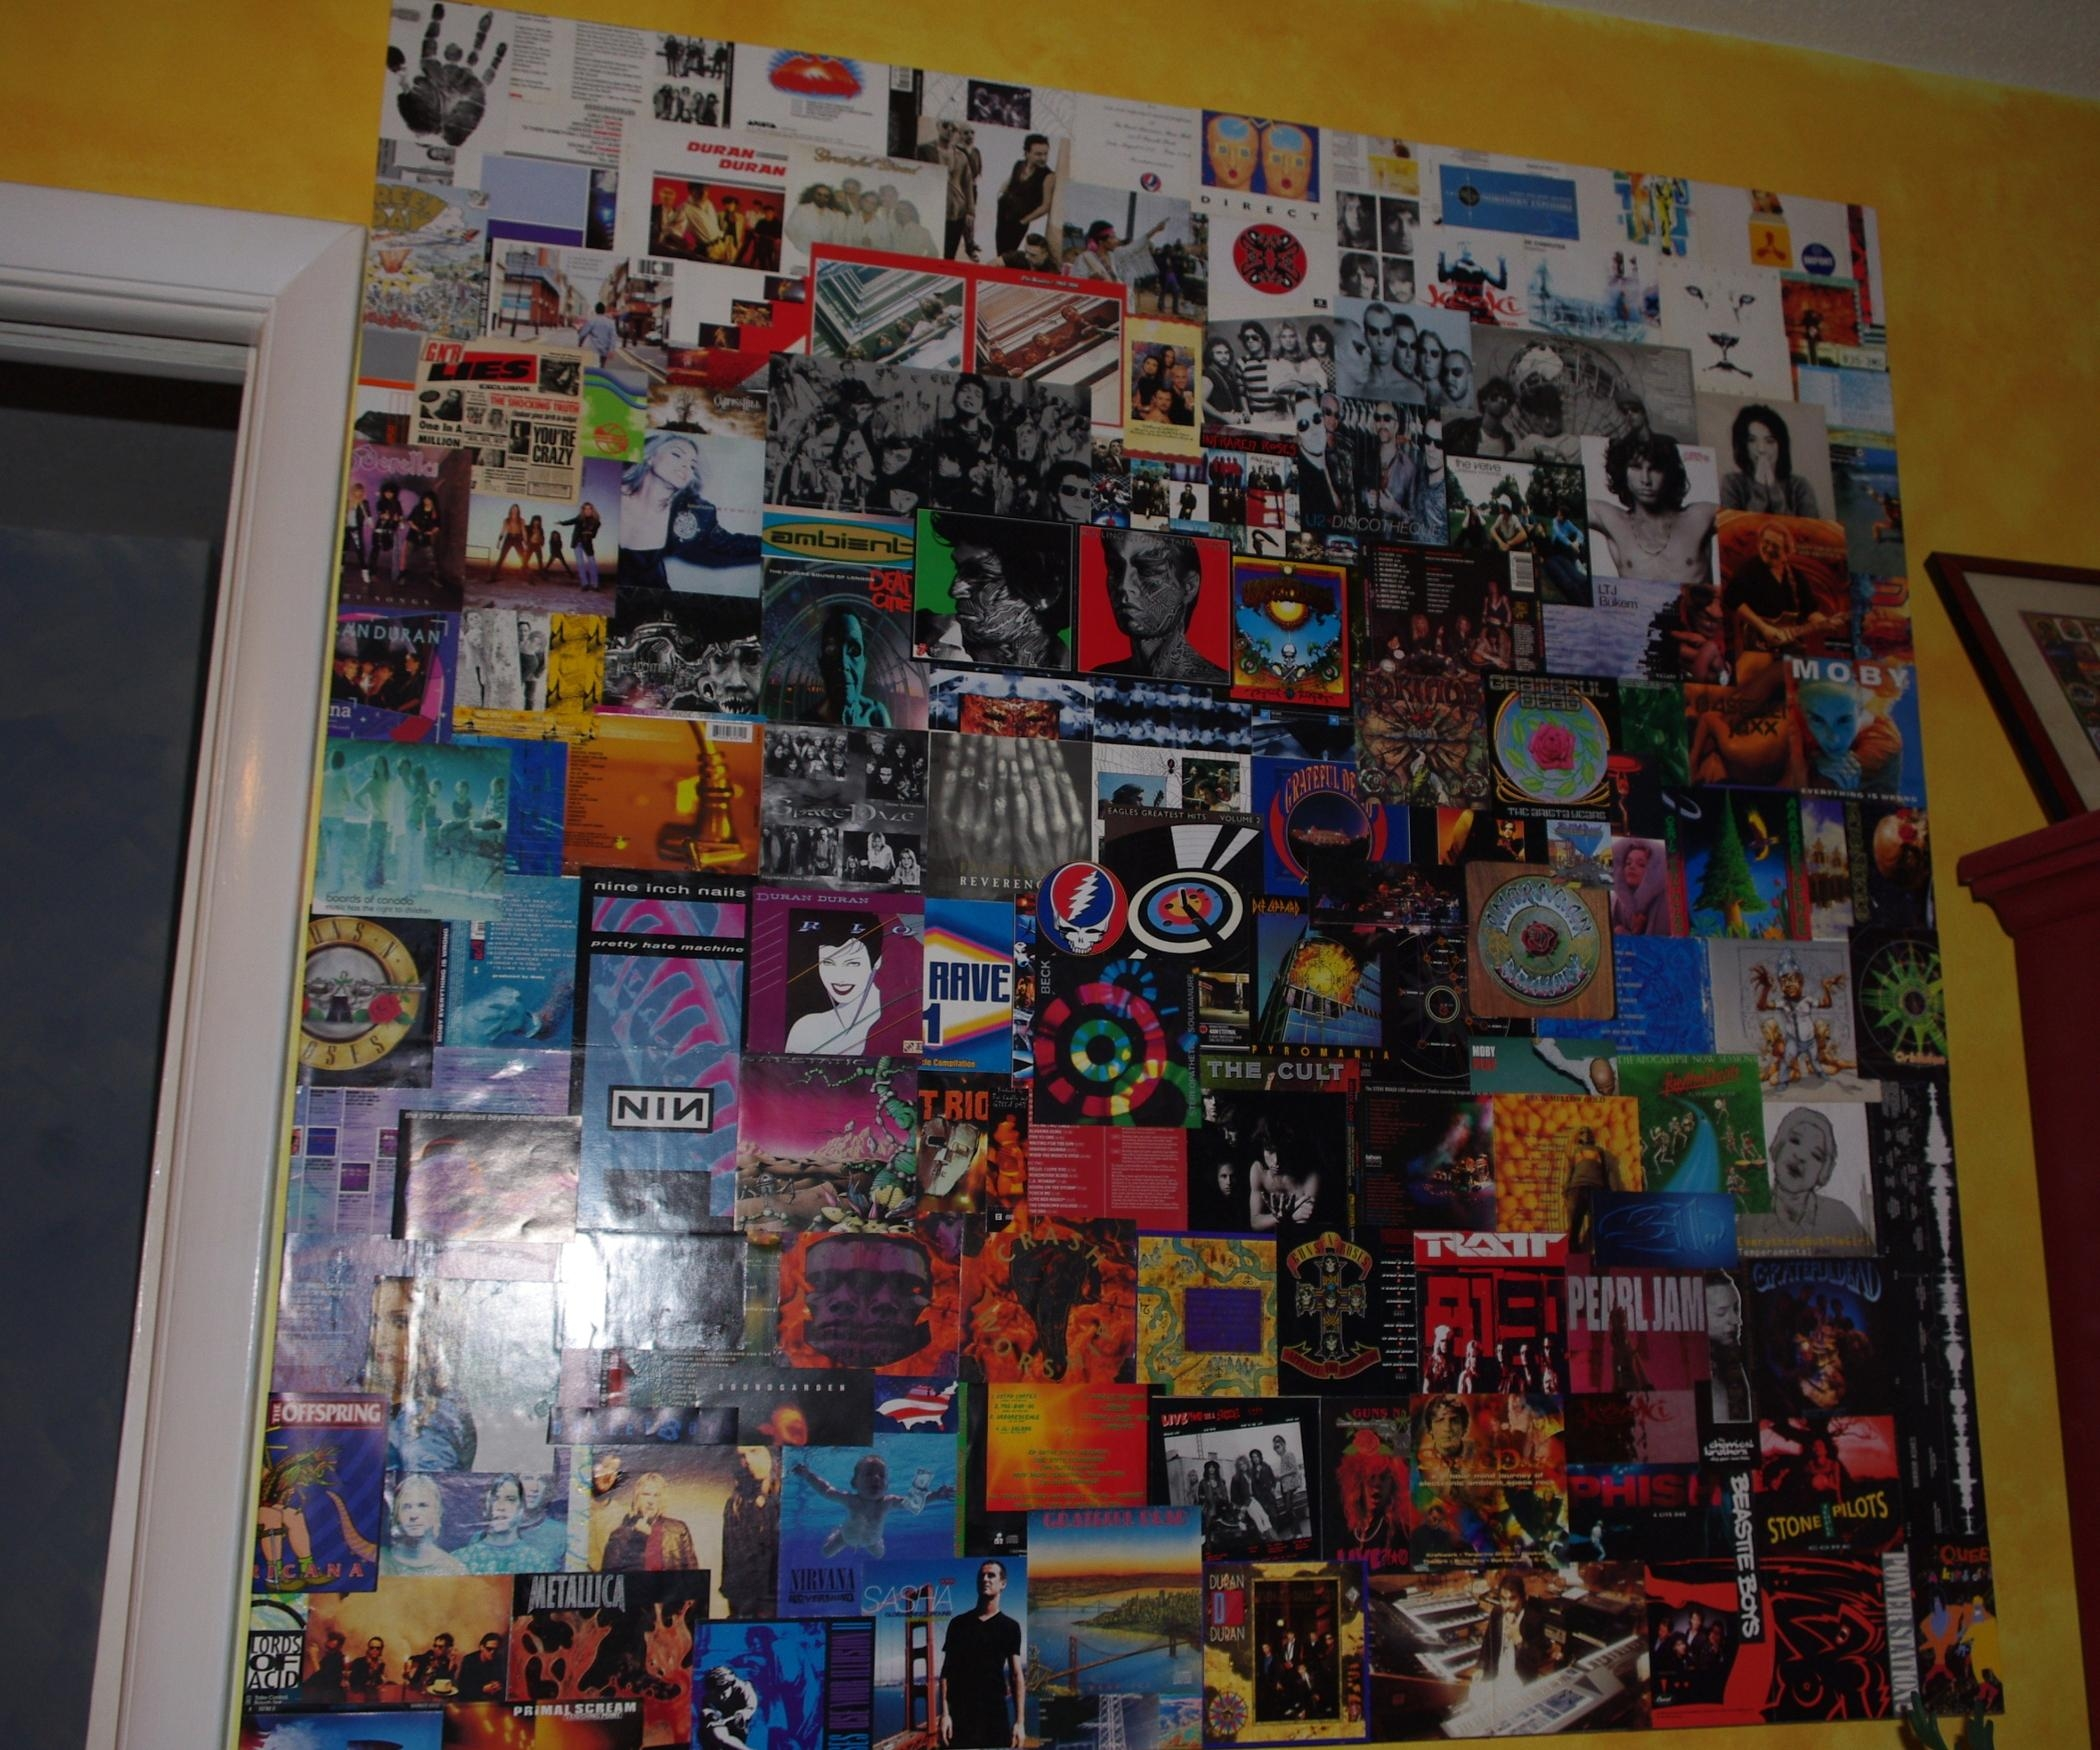 Repurpose Cd Album Cover Art In Giant Wall Collage (View 10 of 20)